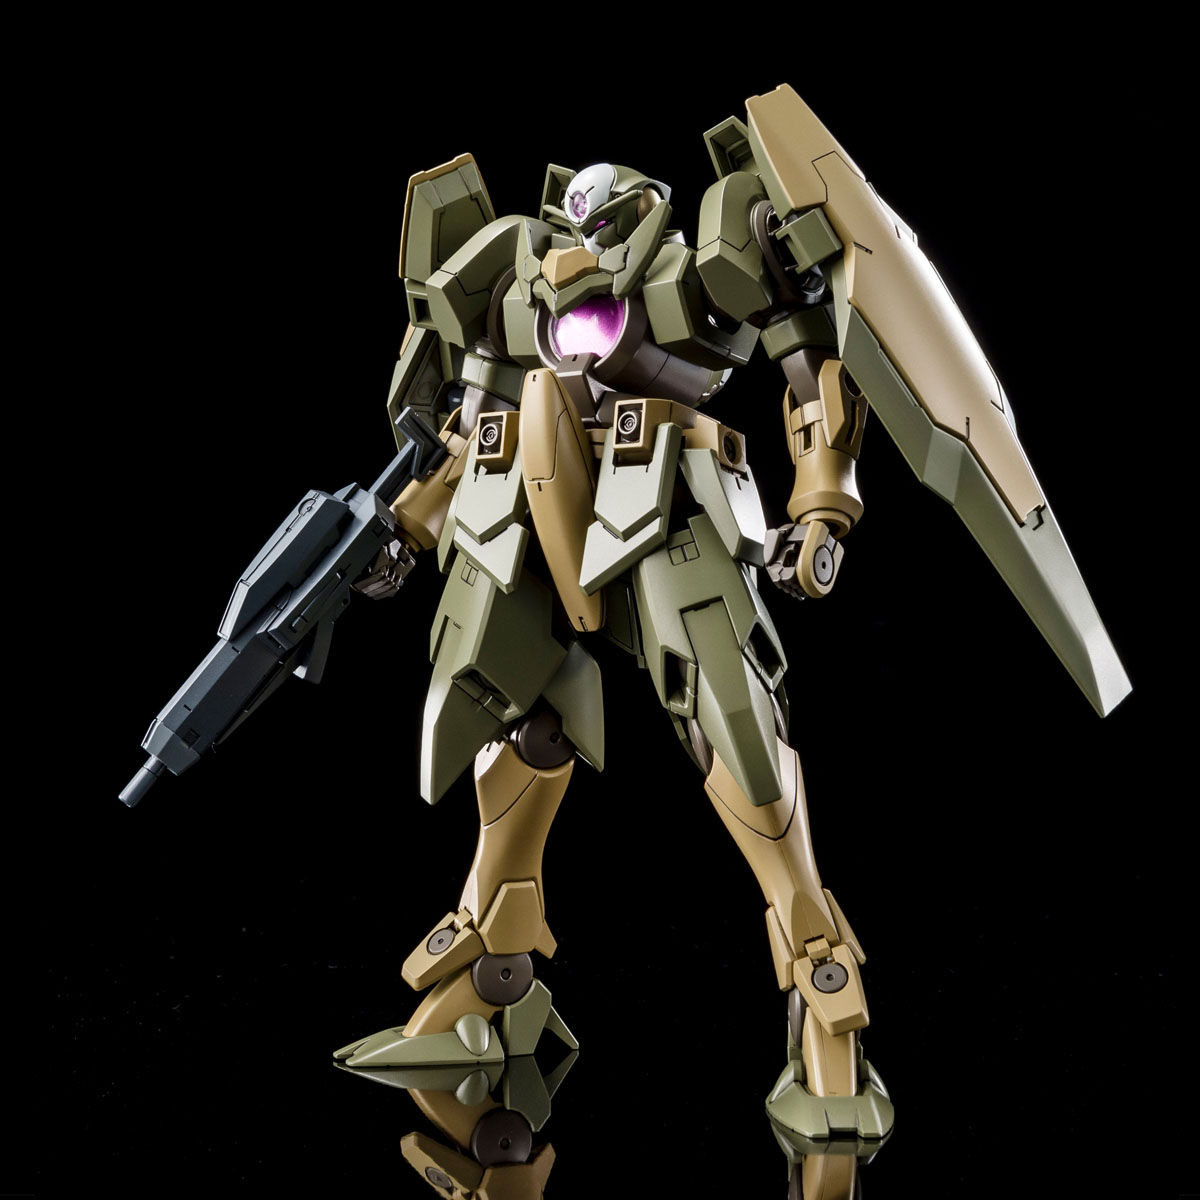 GNX-803T ジンクスIV TYPE.GBF [GN-X IV Type.GFT]